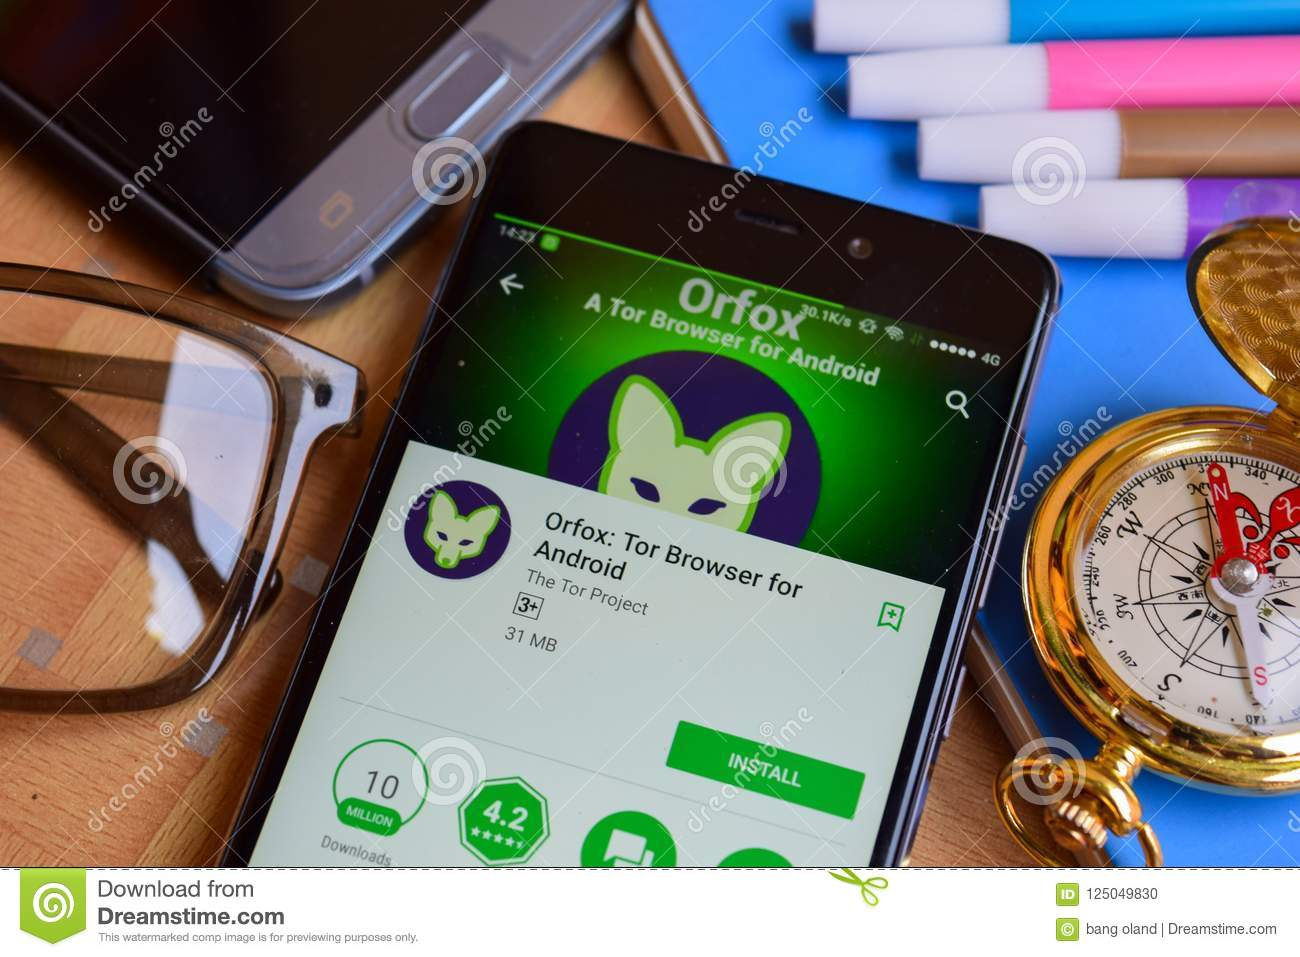 Orfox: Tor Browser For Android Dev App On Smartphone Screen